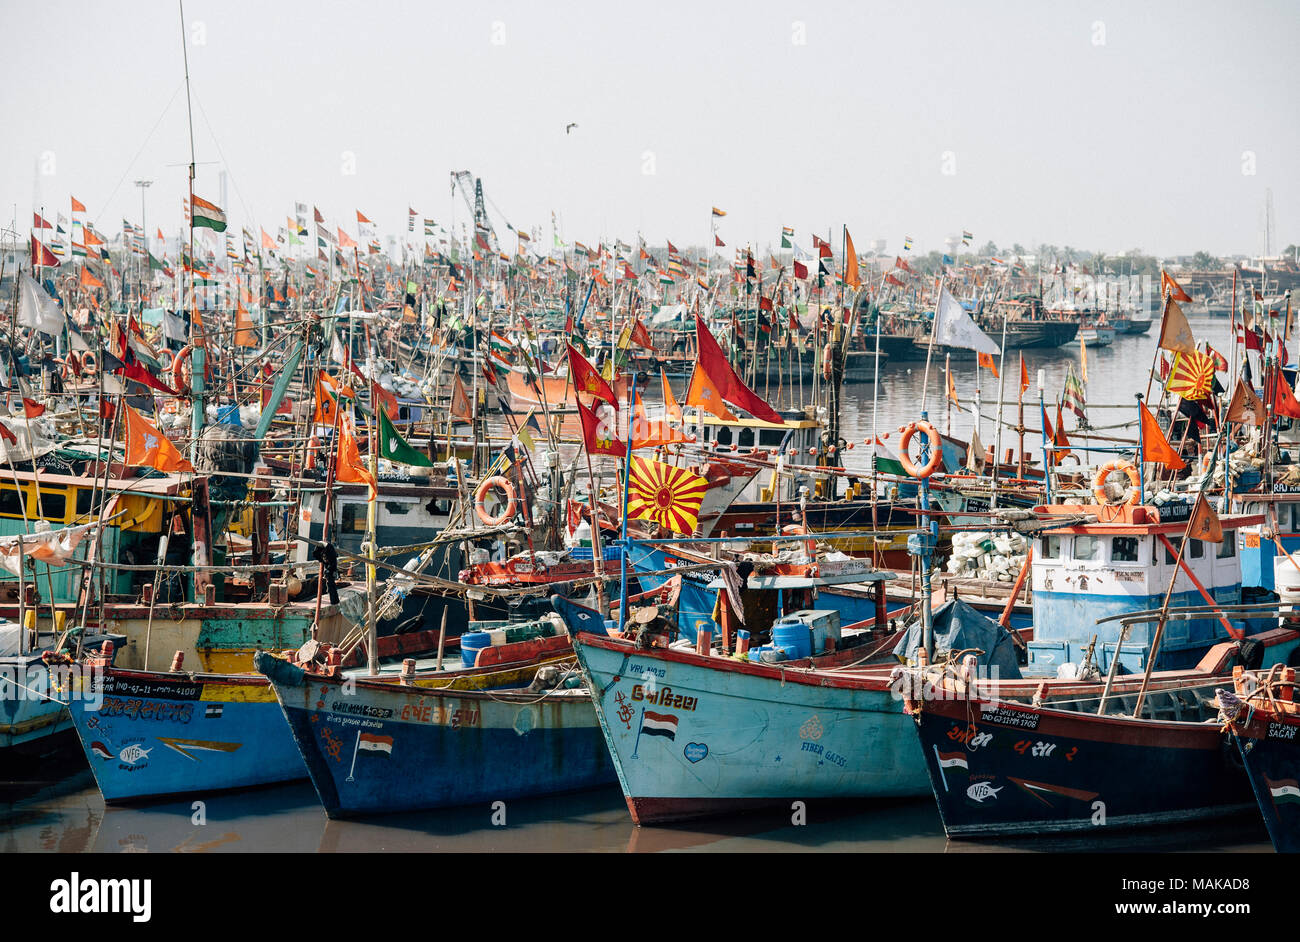 Port mit Fisherboats in Indien Stockbild